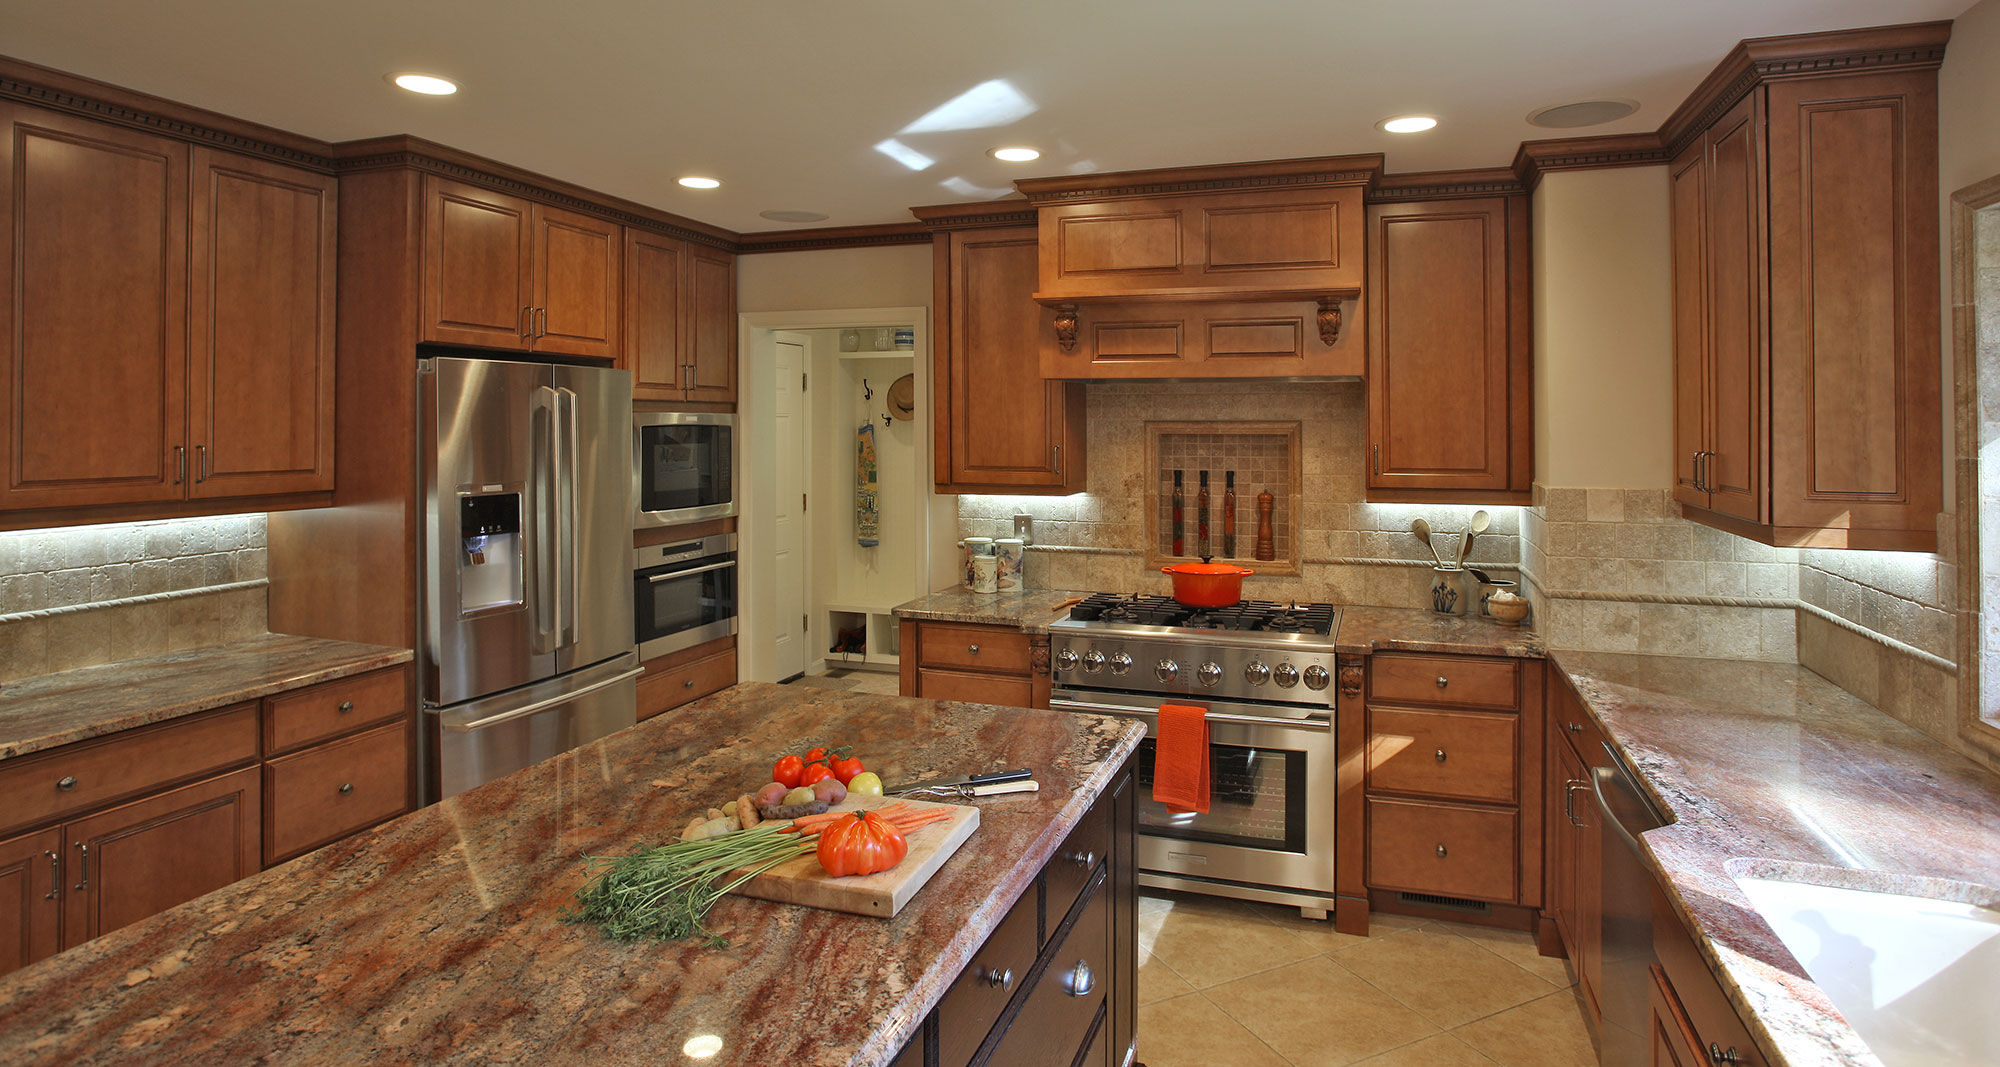 Kitchen Remodel Northern Virginia Prepossessing Kitchen And Bath Remodeling Serving Northern Virginia Maryland . Review